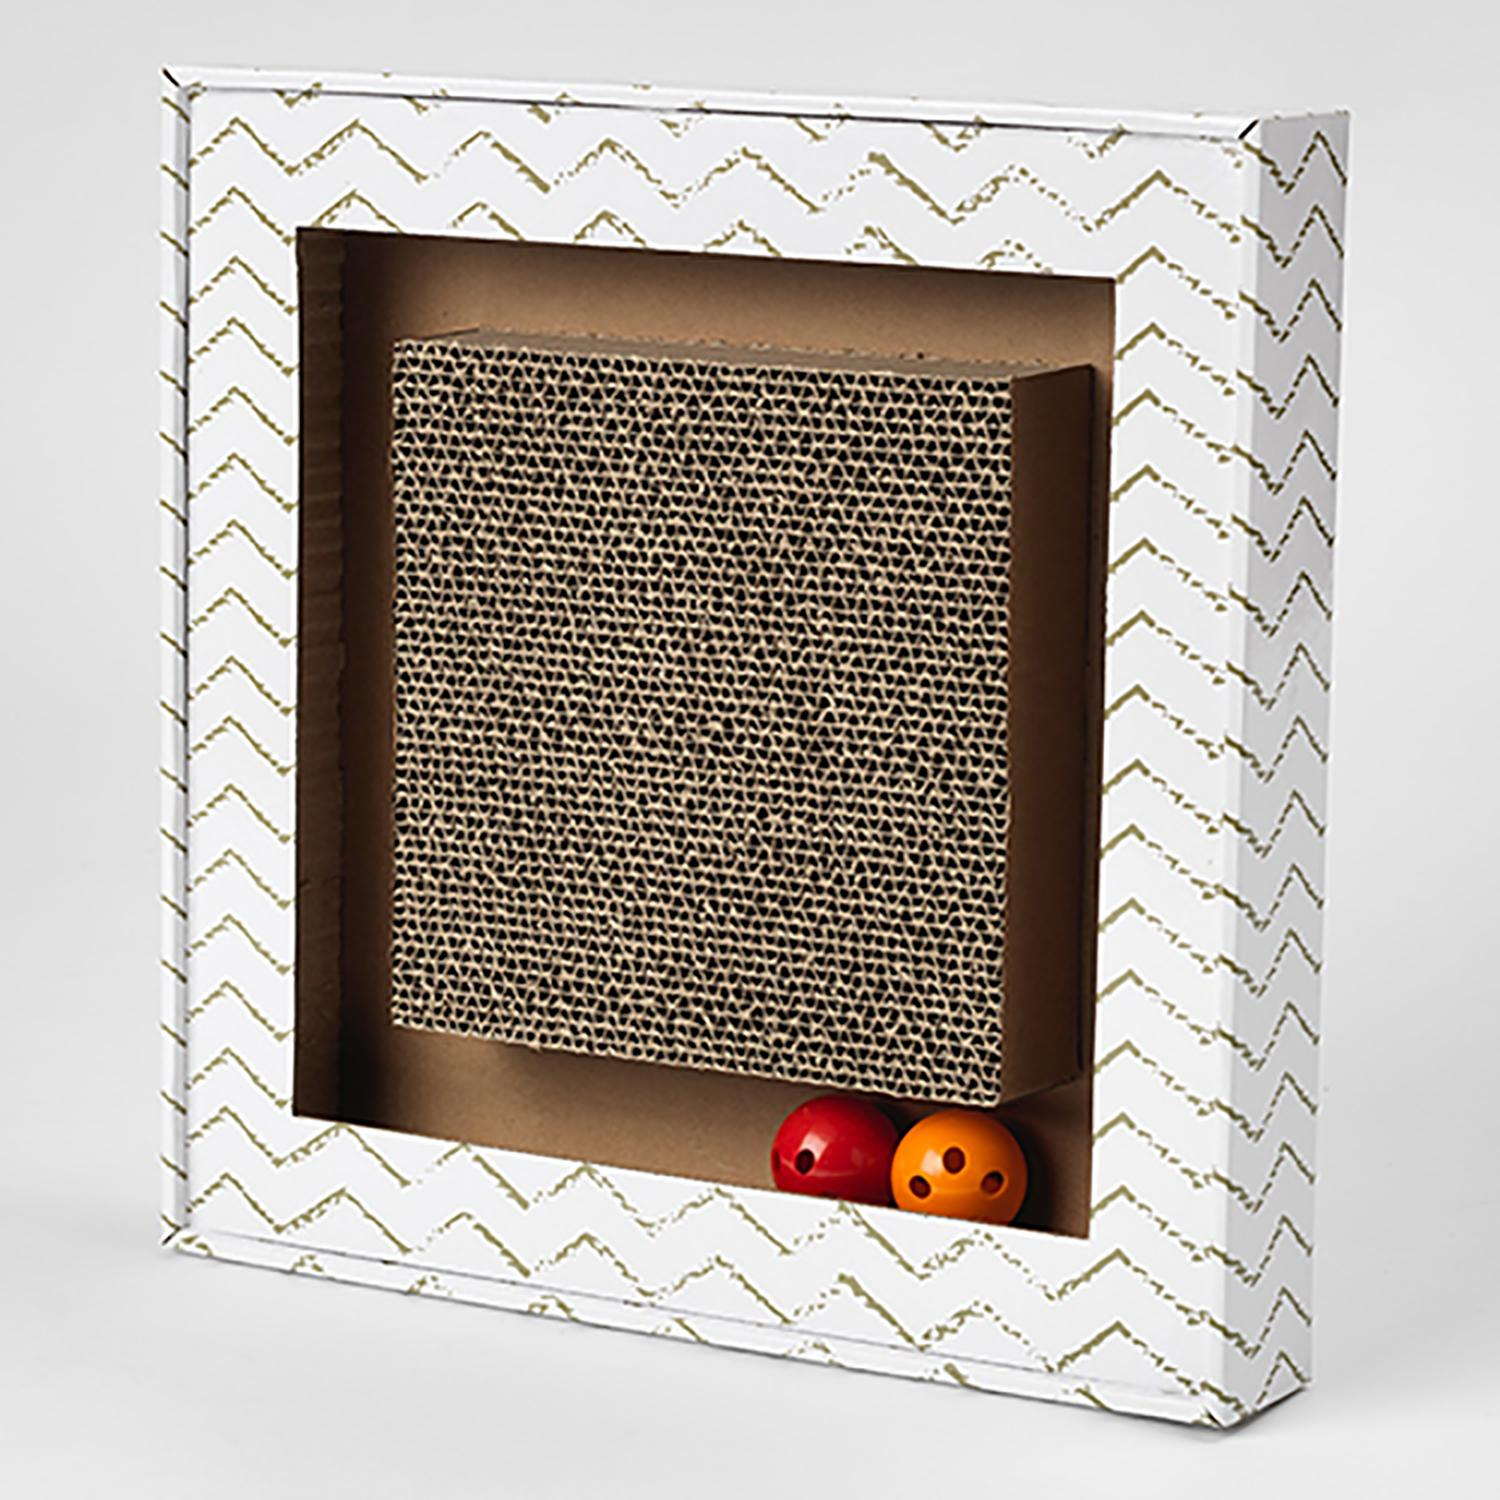 Sylvester's Interactive Cat Scratcher - Square Chevron White and Gray